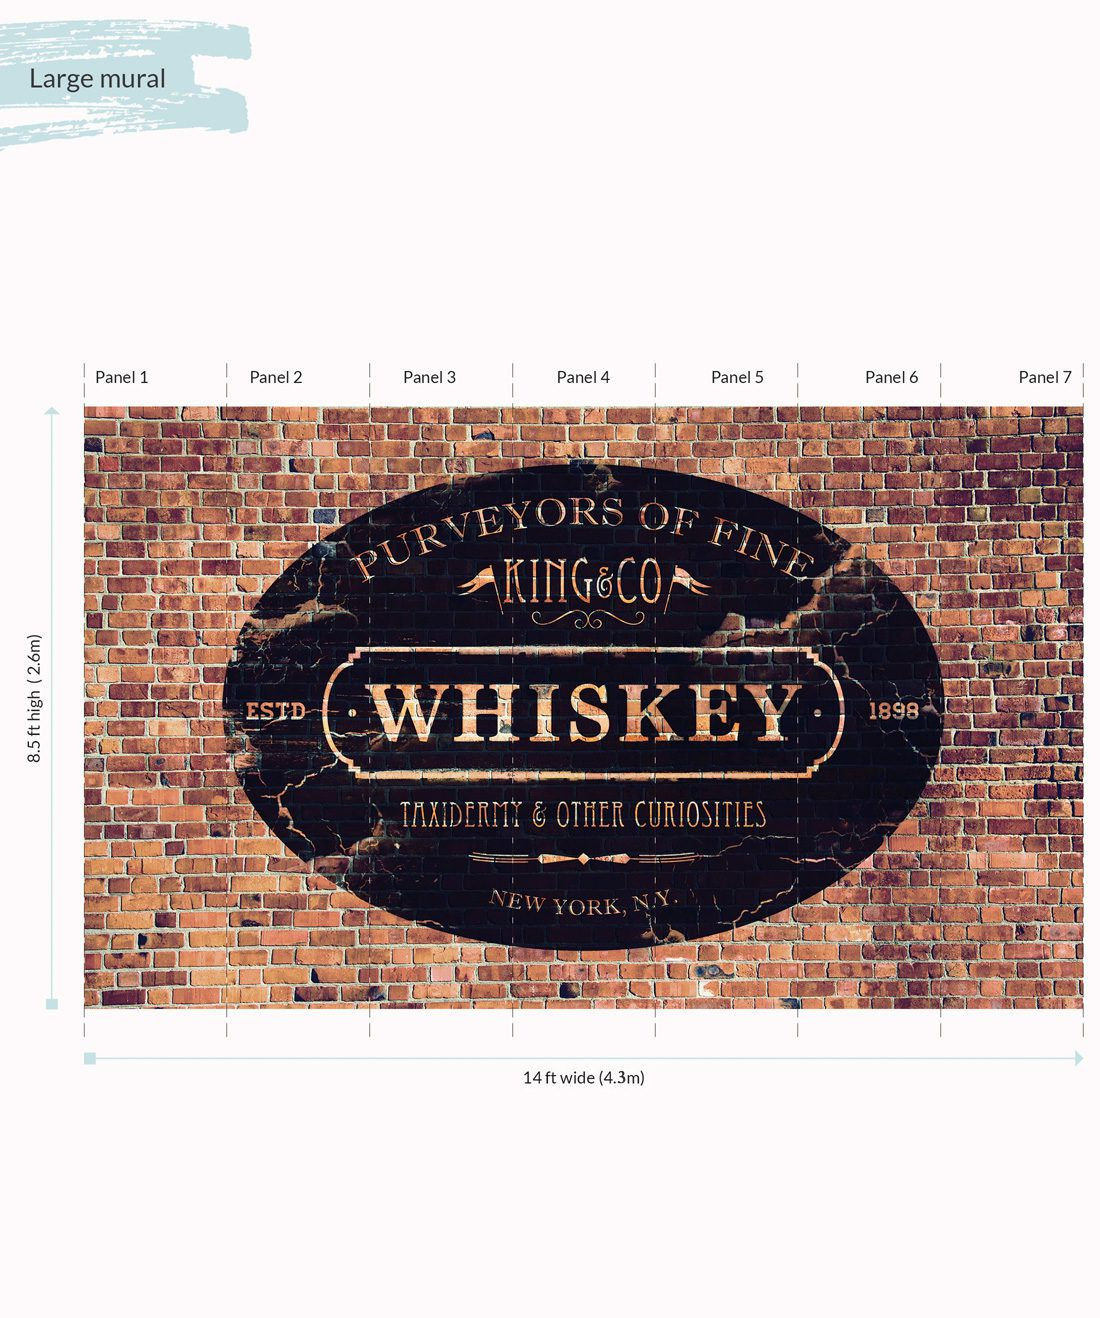 King & Co Whiskey Mural - Large